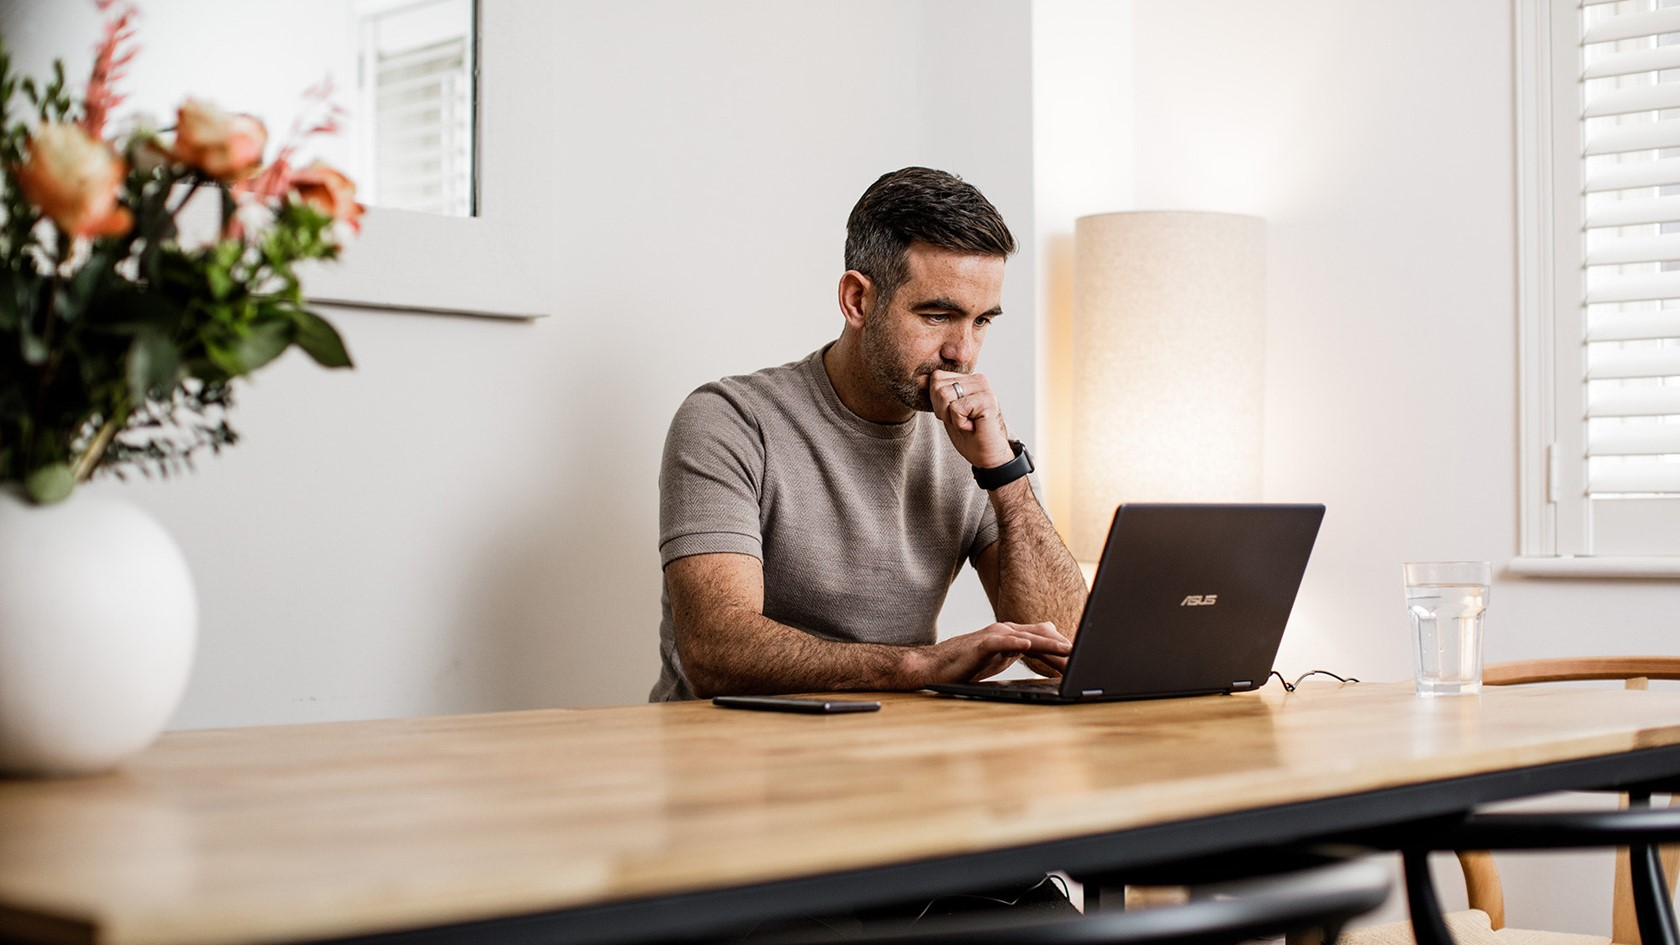 Man searches on a laptop whilst sat at the kitchen table.